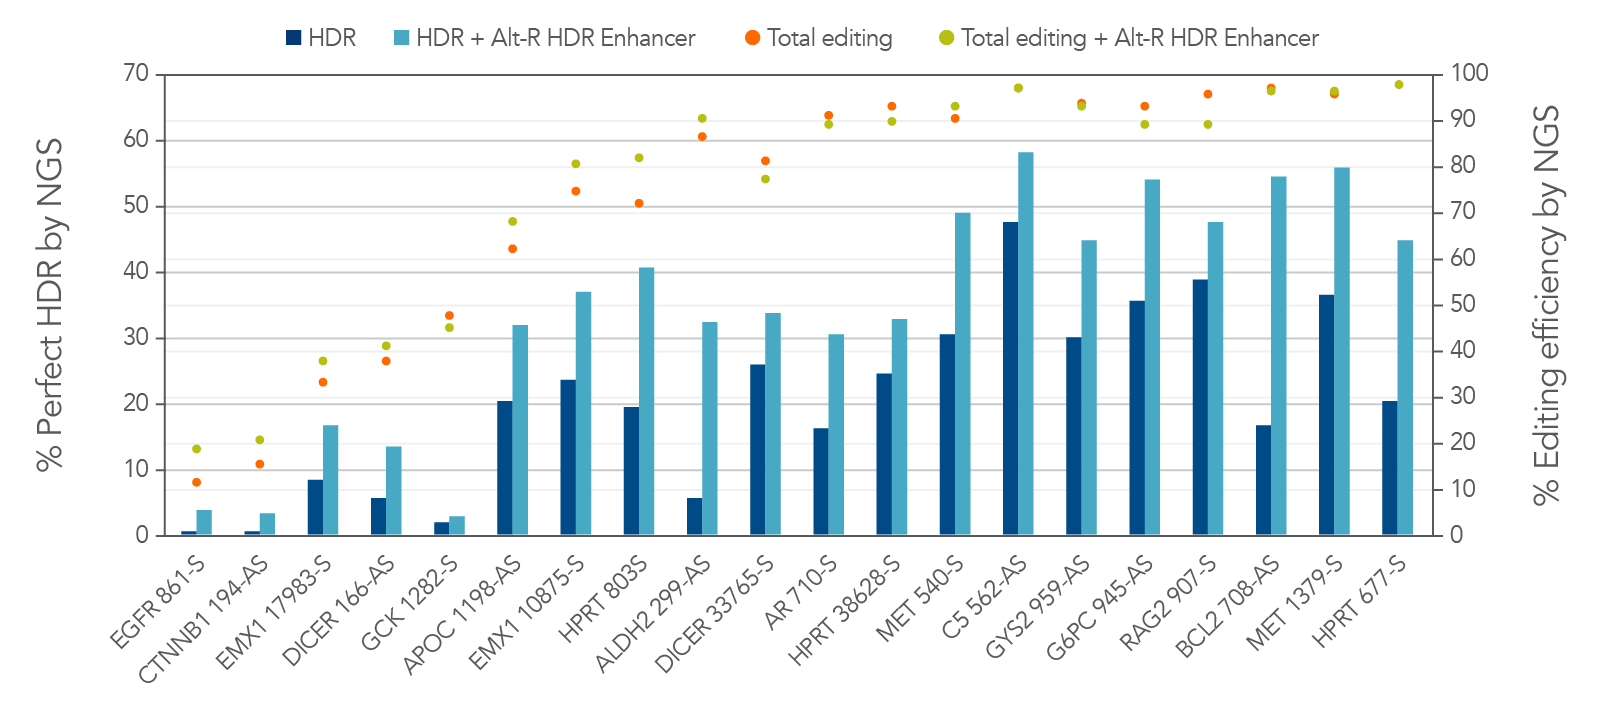 Alt-R HDR Enhancer improves the rate of perfect HDR with 2PS-modified donor Ultramer oligos.